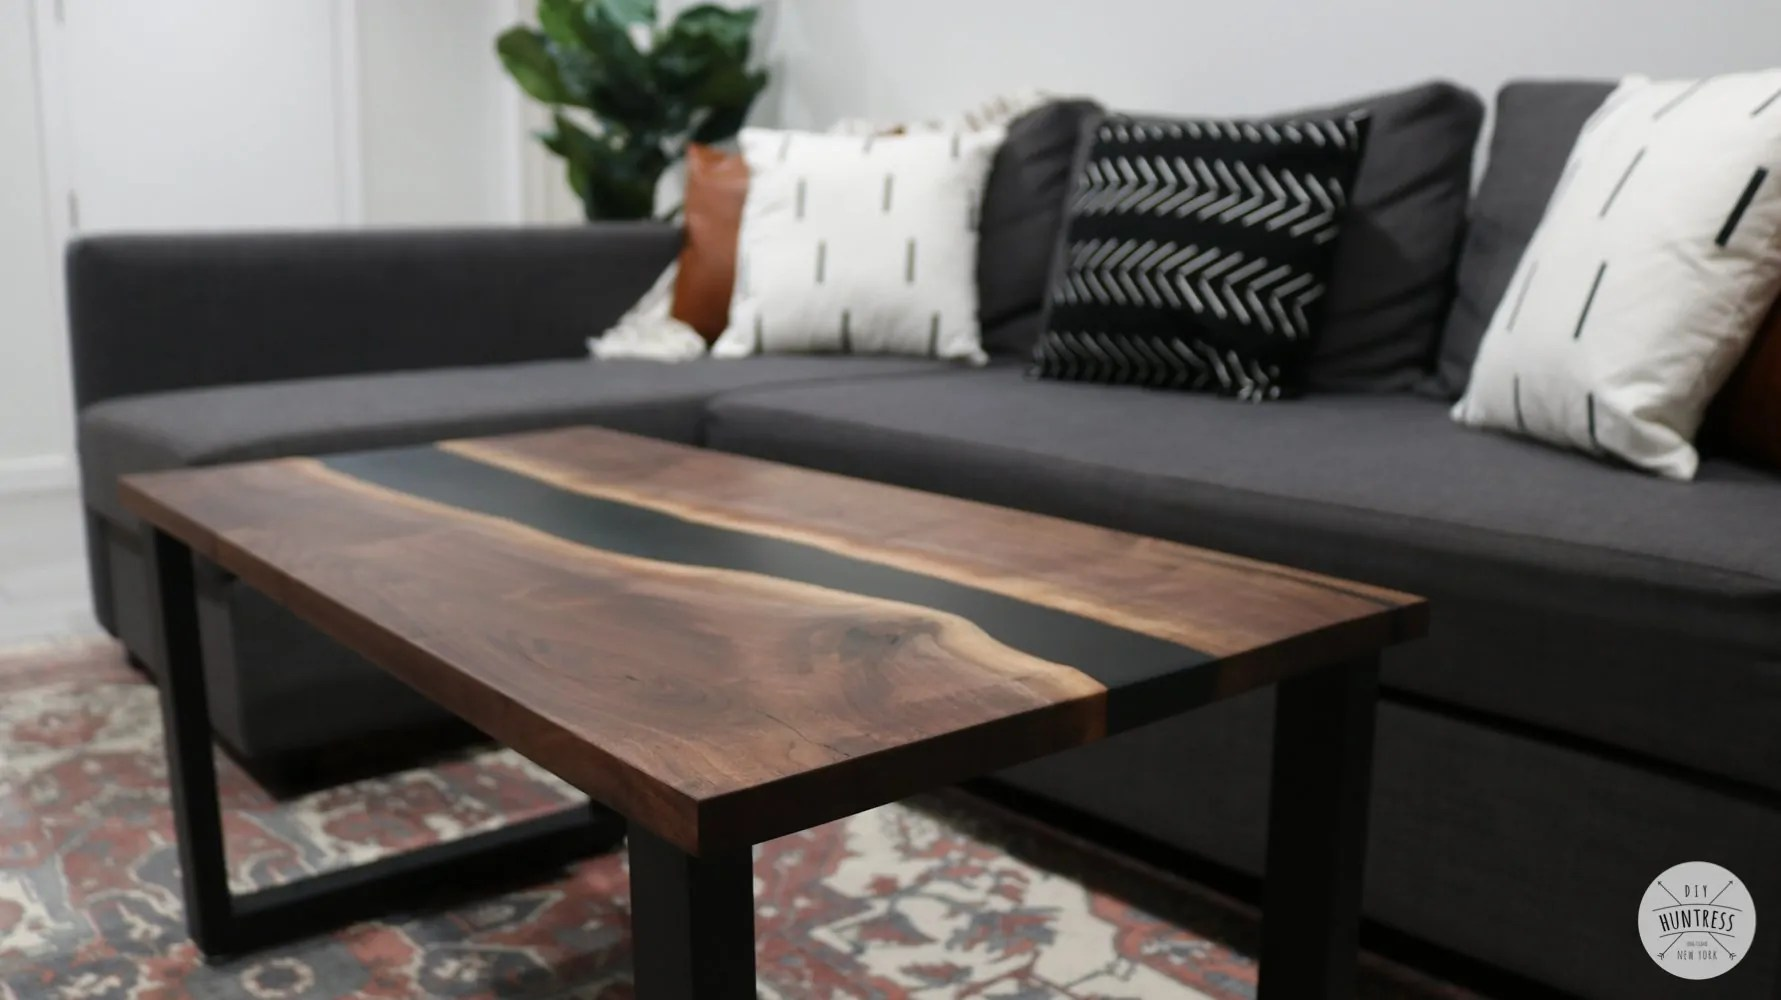 diy resin river coffee table diy huntress